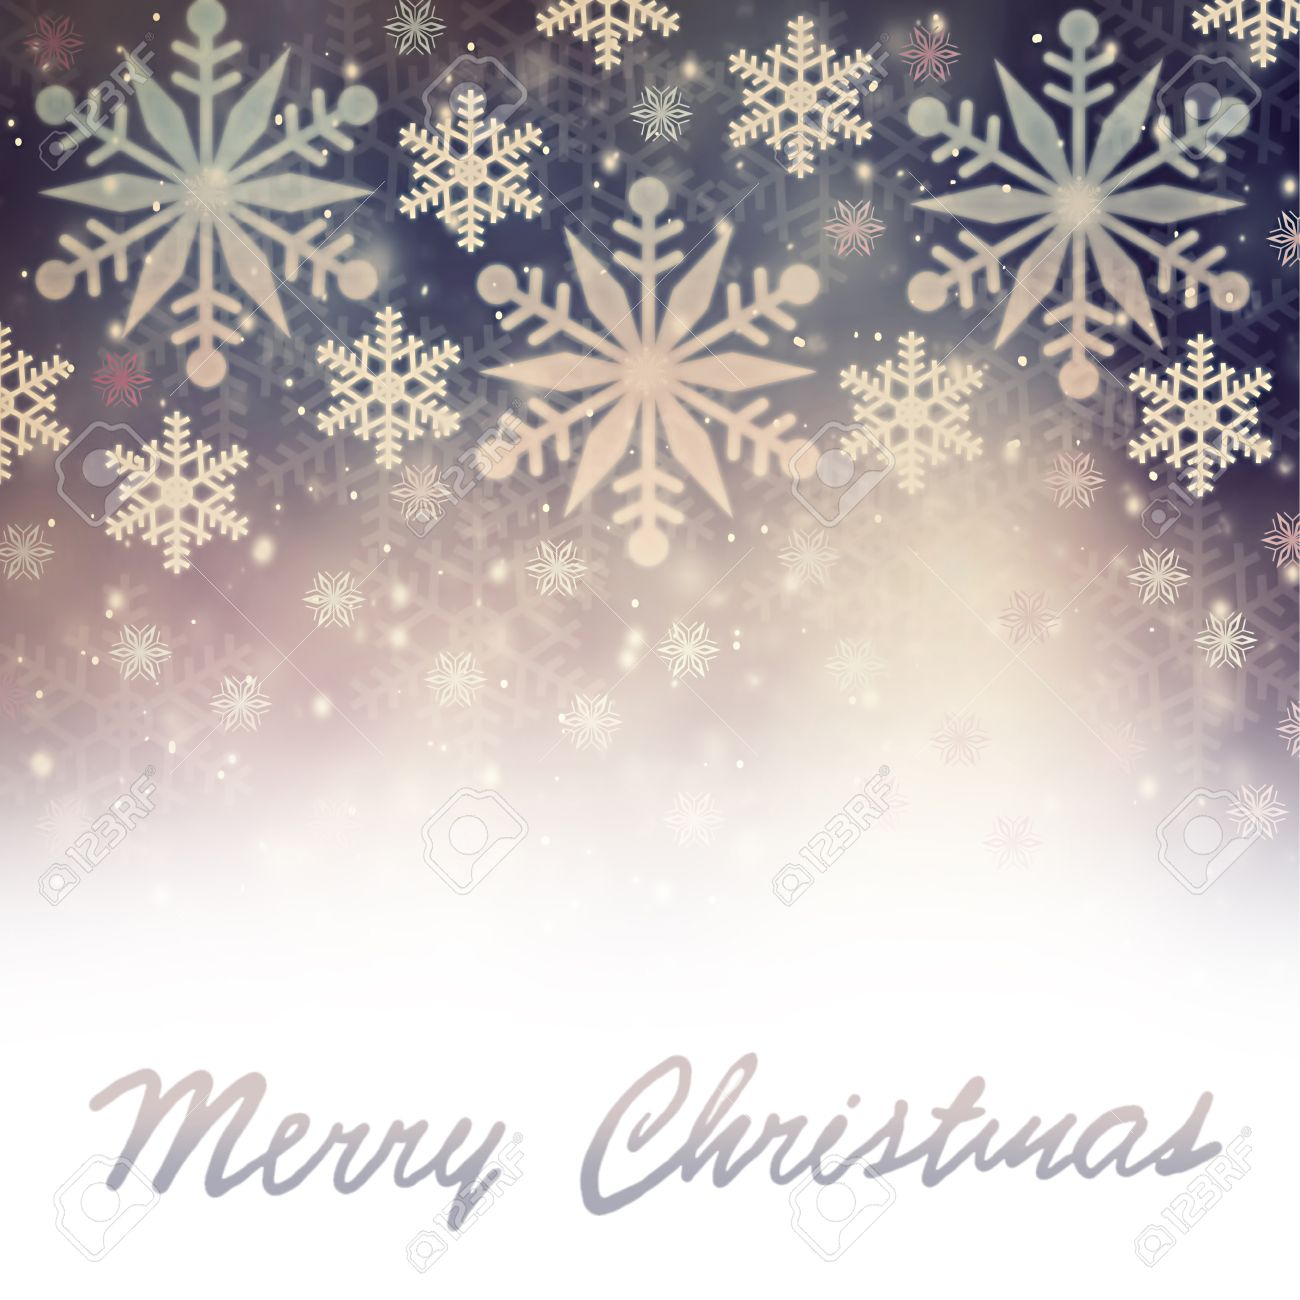 Merry Christmas Greeting Card, Beautiful Vintage Snowflakes Border ...